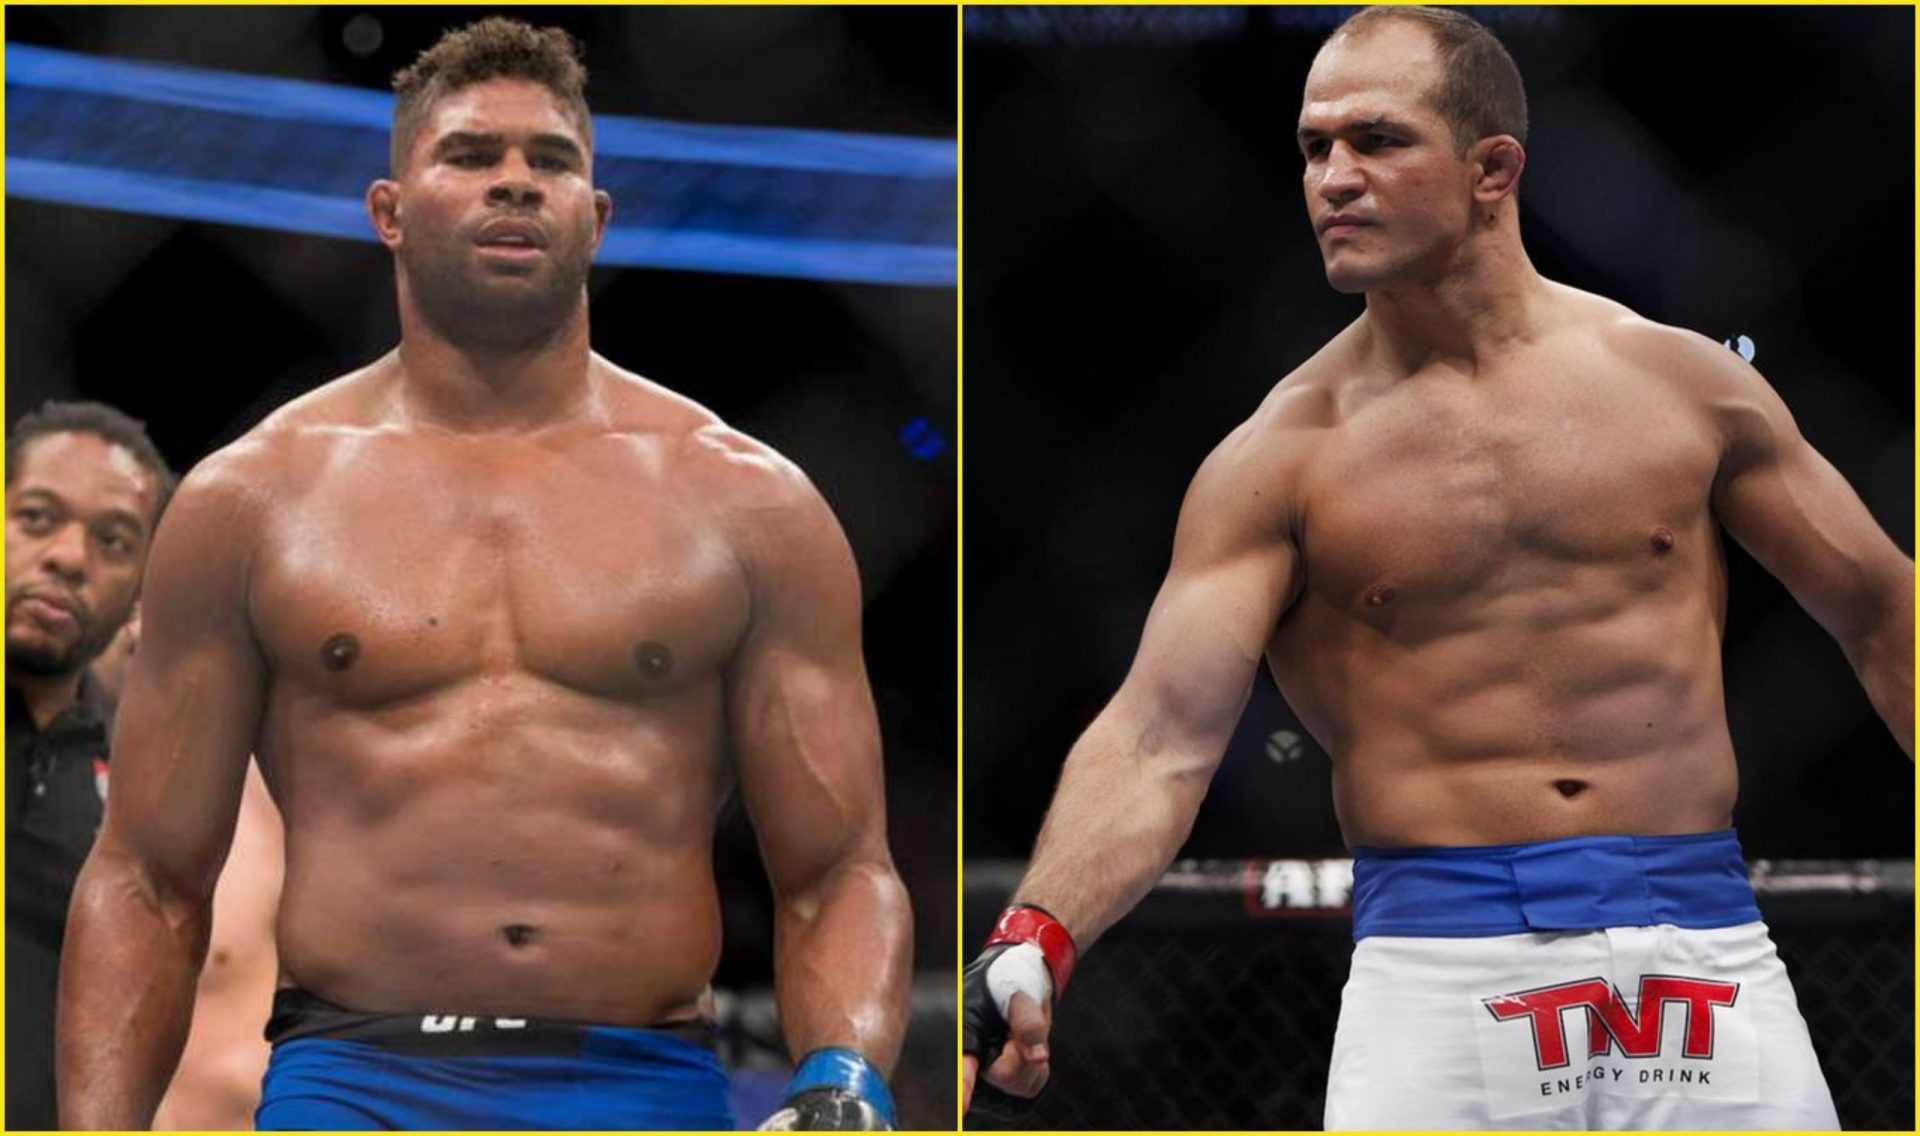 BKFC interested in adding Junior dos Santos and Alistair Overeem to their roster - Overeem